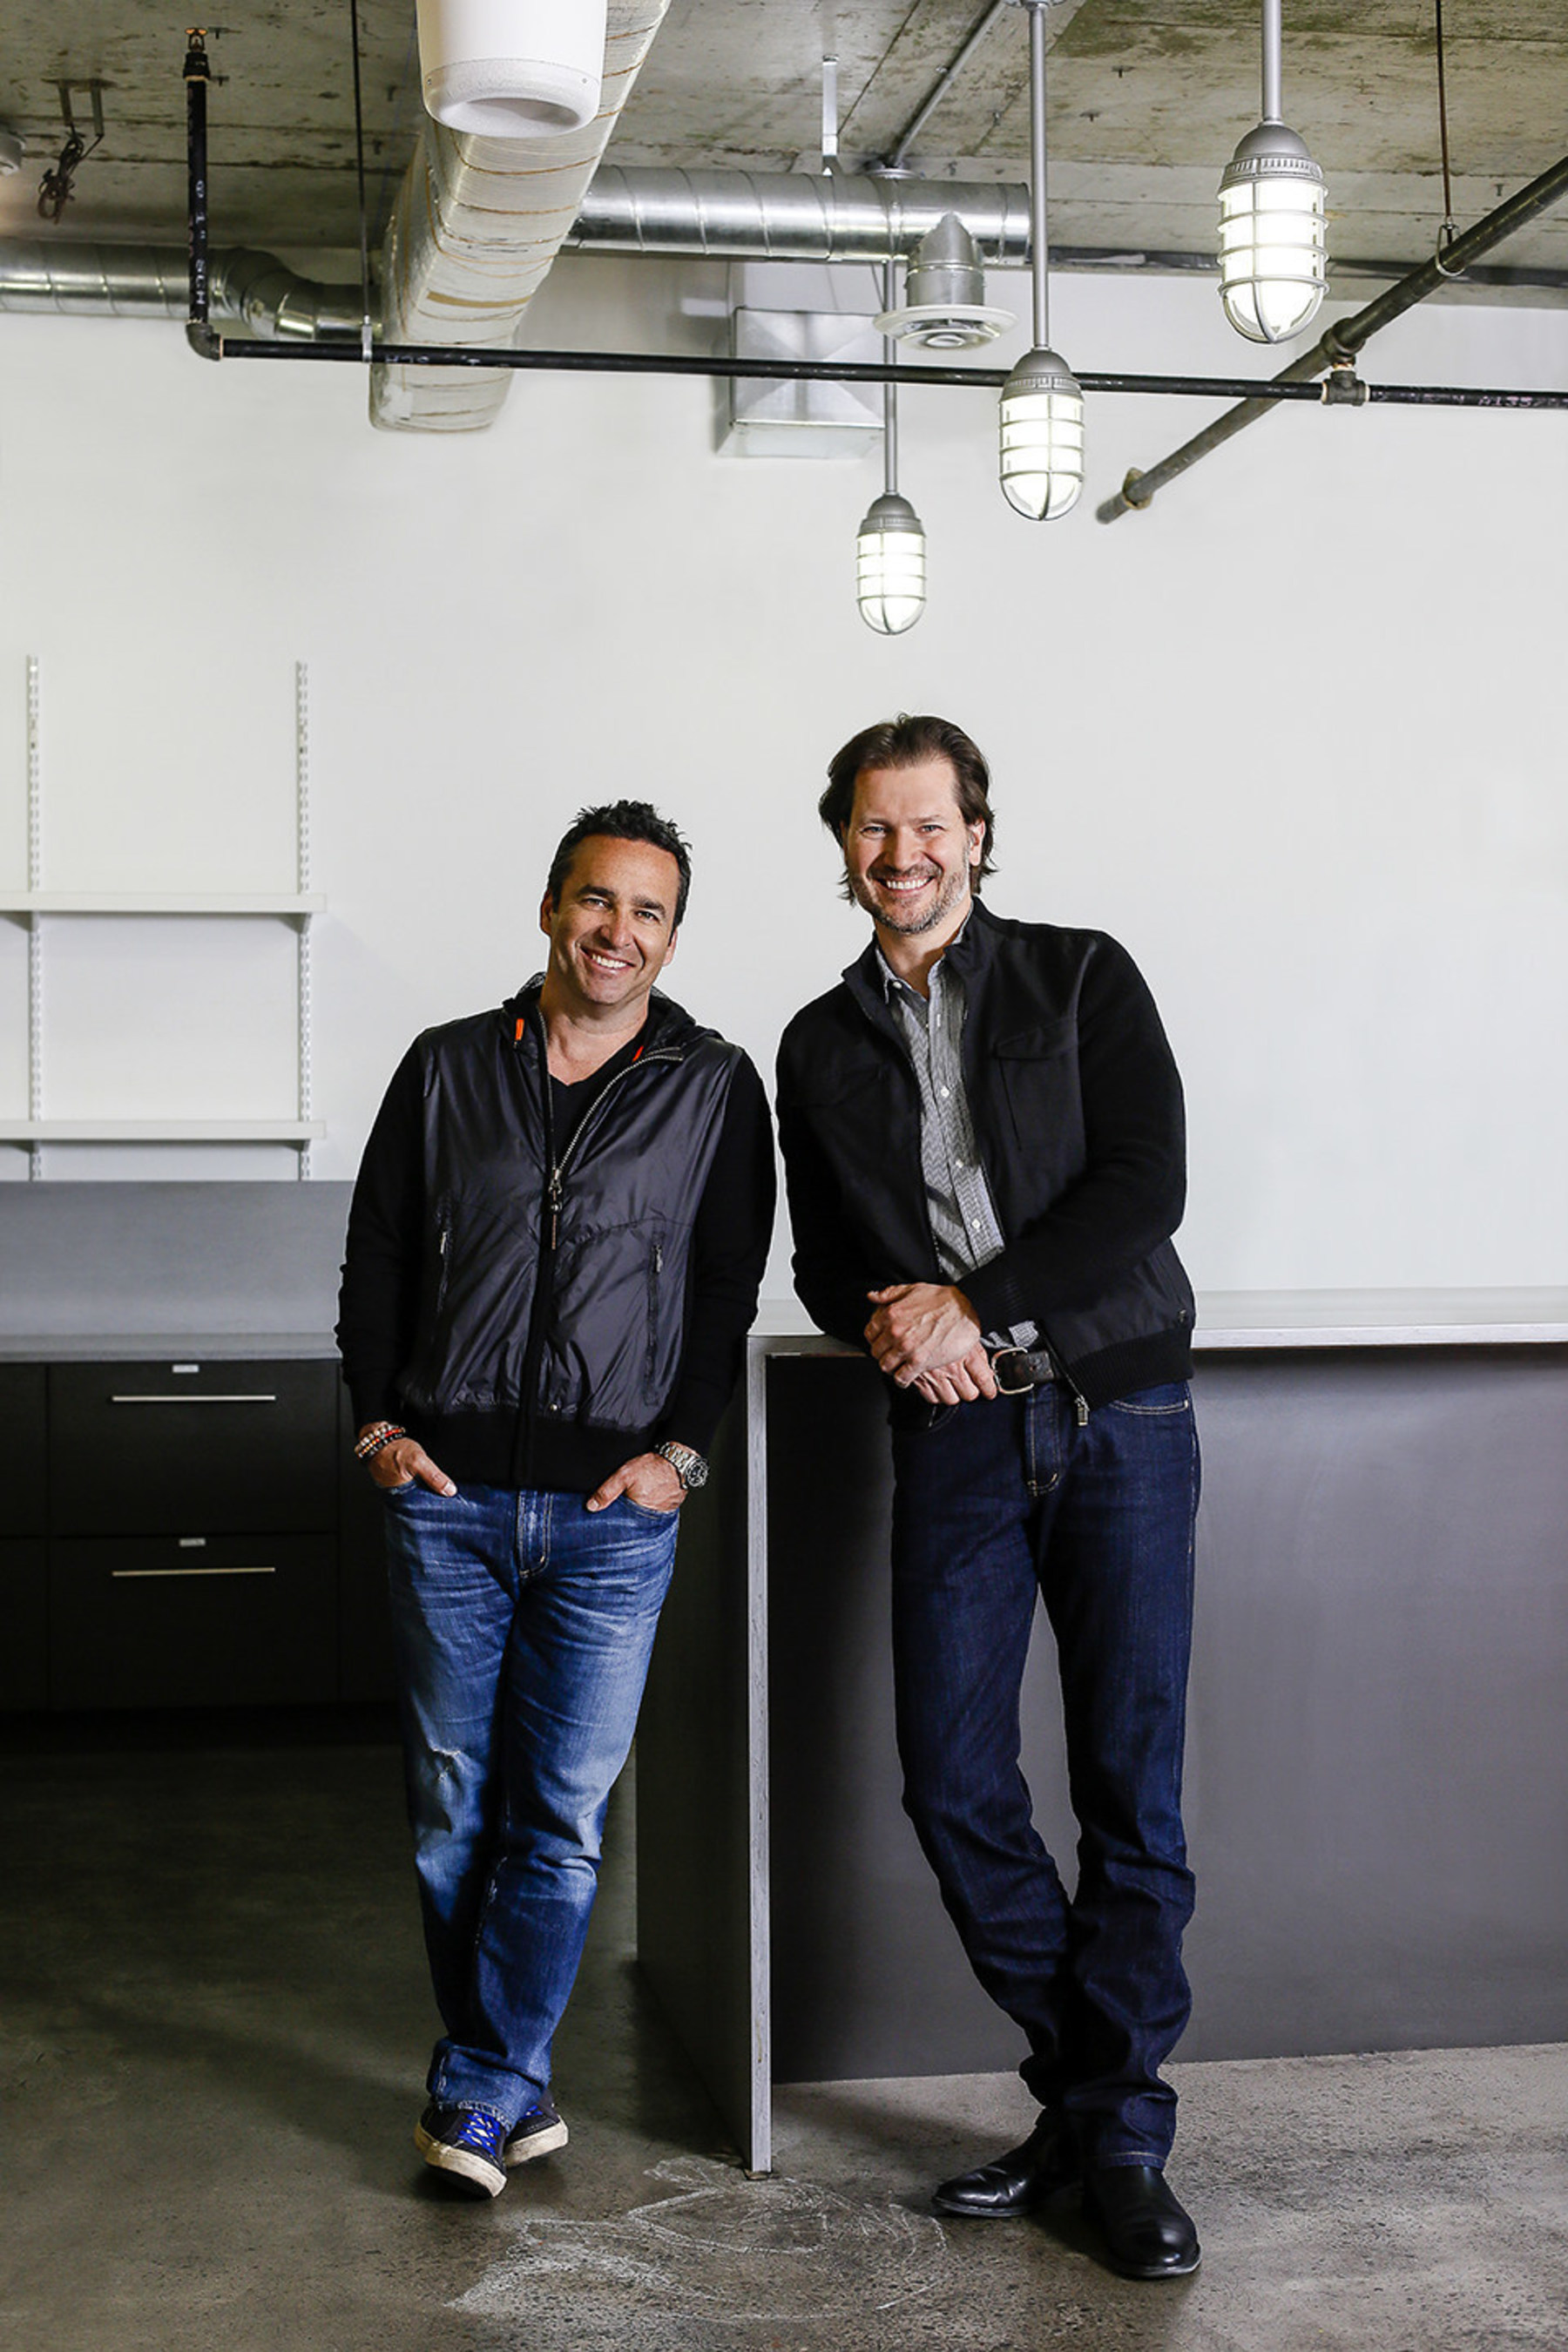 Newly appointed Avid Life Media CEO Rob Segal (left) and newly appointed President James Millership (right) are charting a new course for Avid Life Media and its flagship brand, Ashley Madison. Segal and Millership are pictured in the company's future head office, which is currently under construction in Toronto.